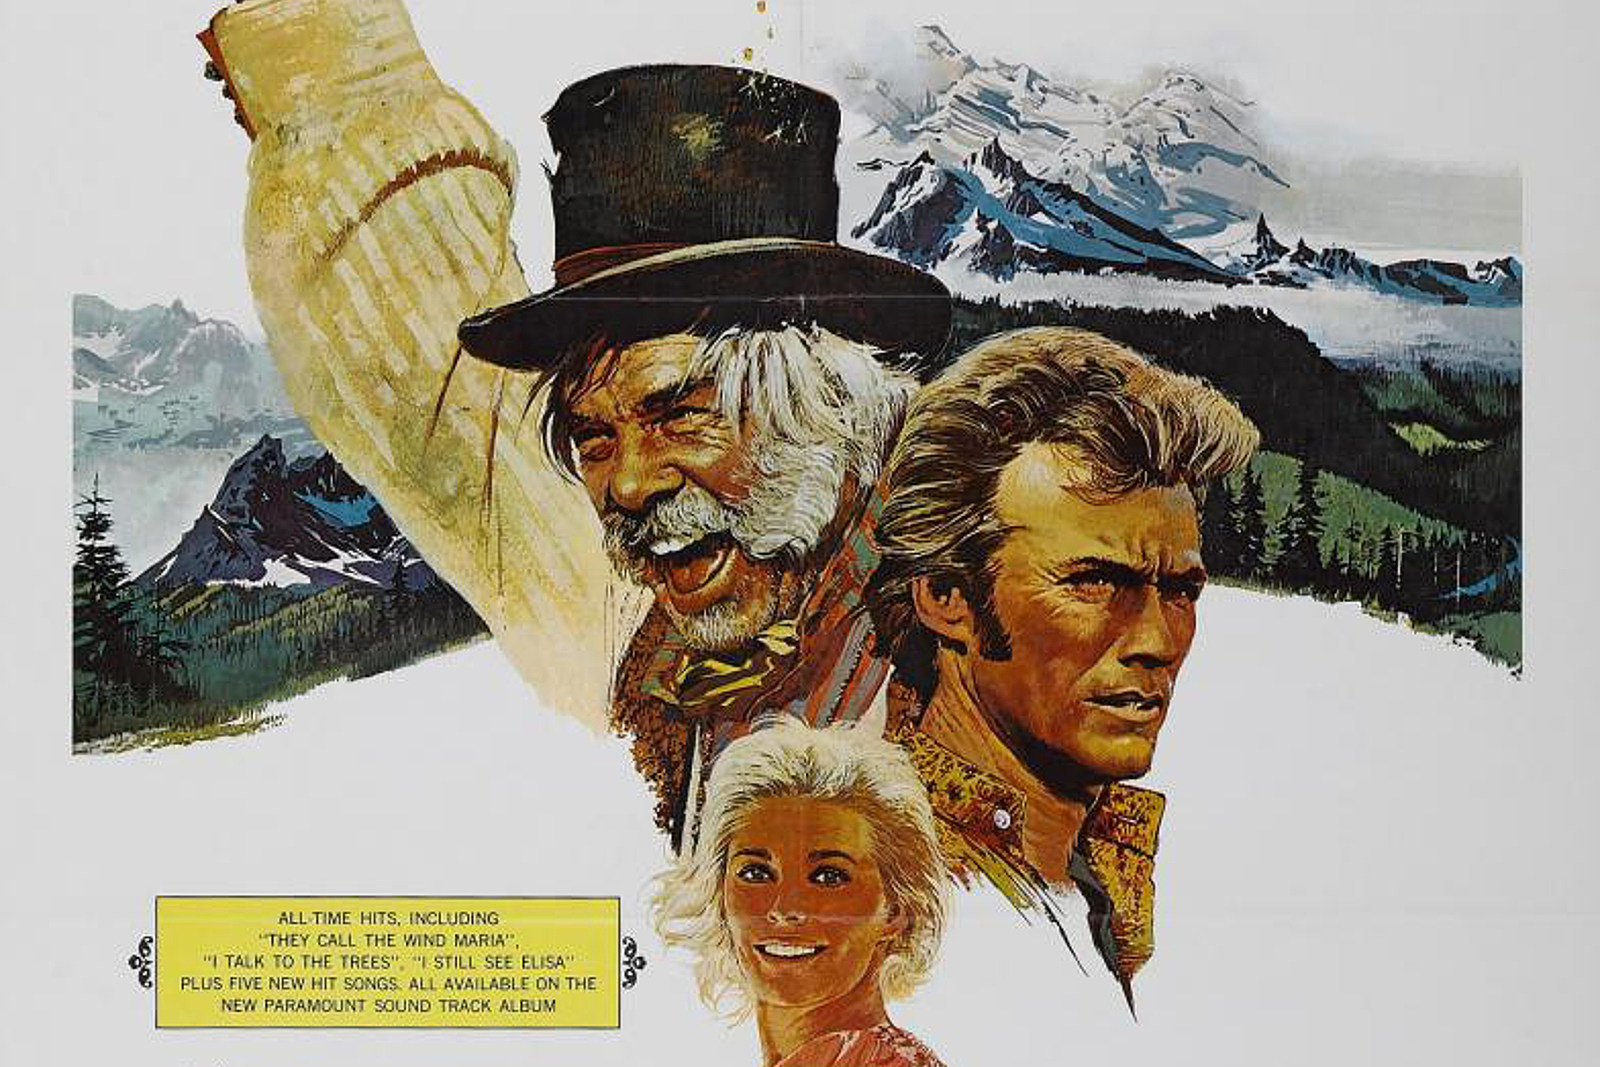 50 Years Ago: Clint Eastwood Gets Musical in 'Paint Your Wagon'